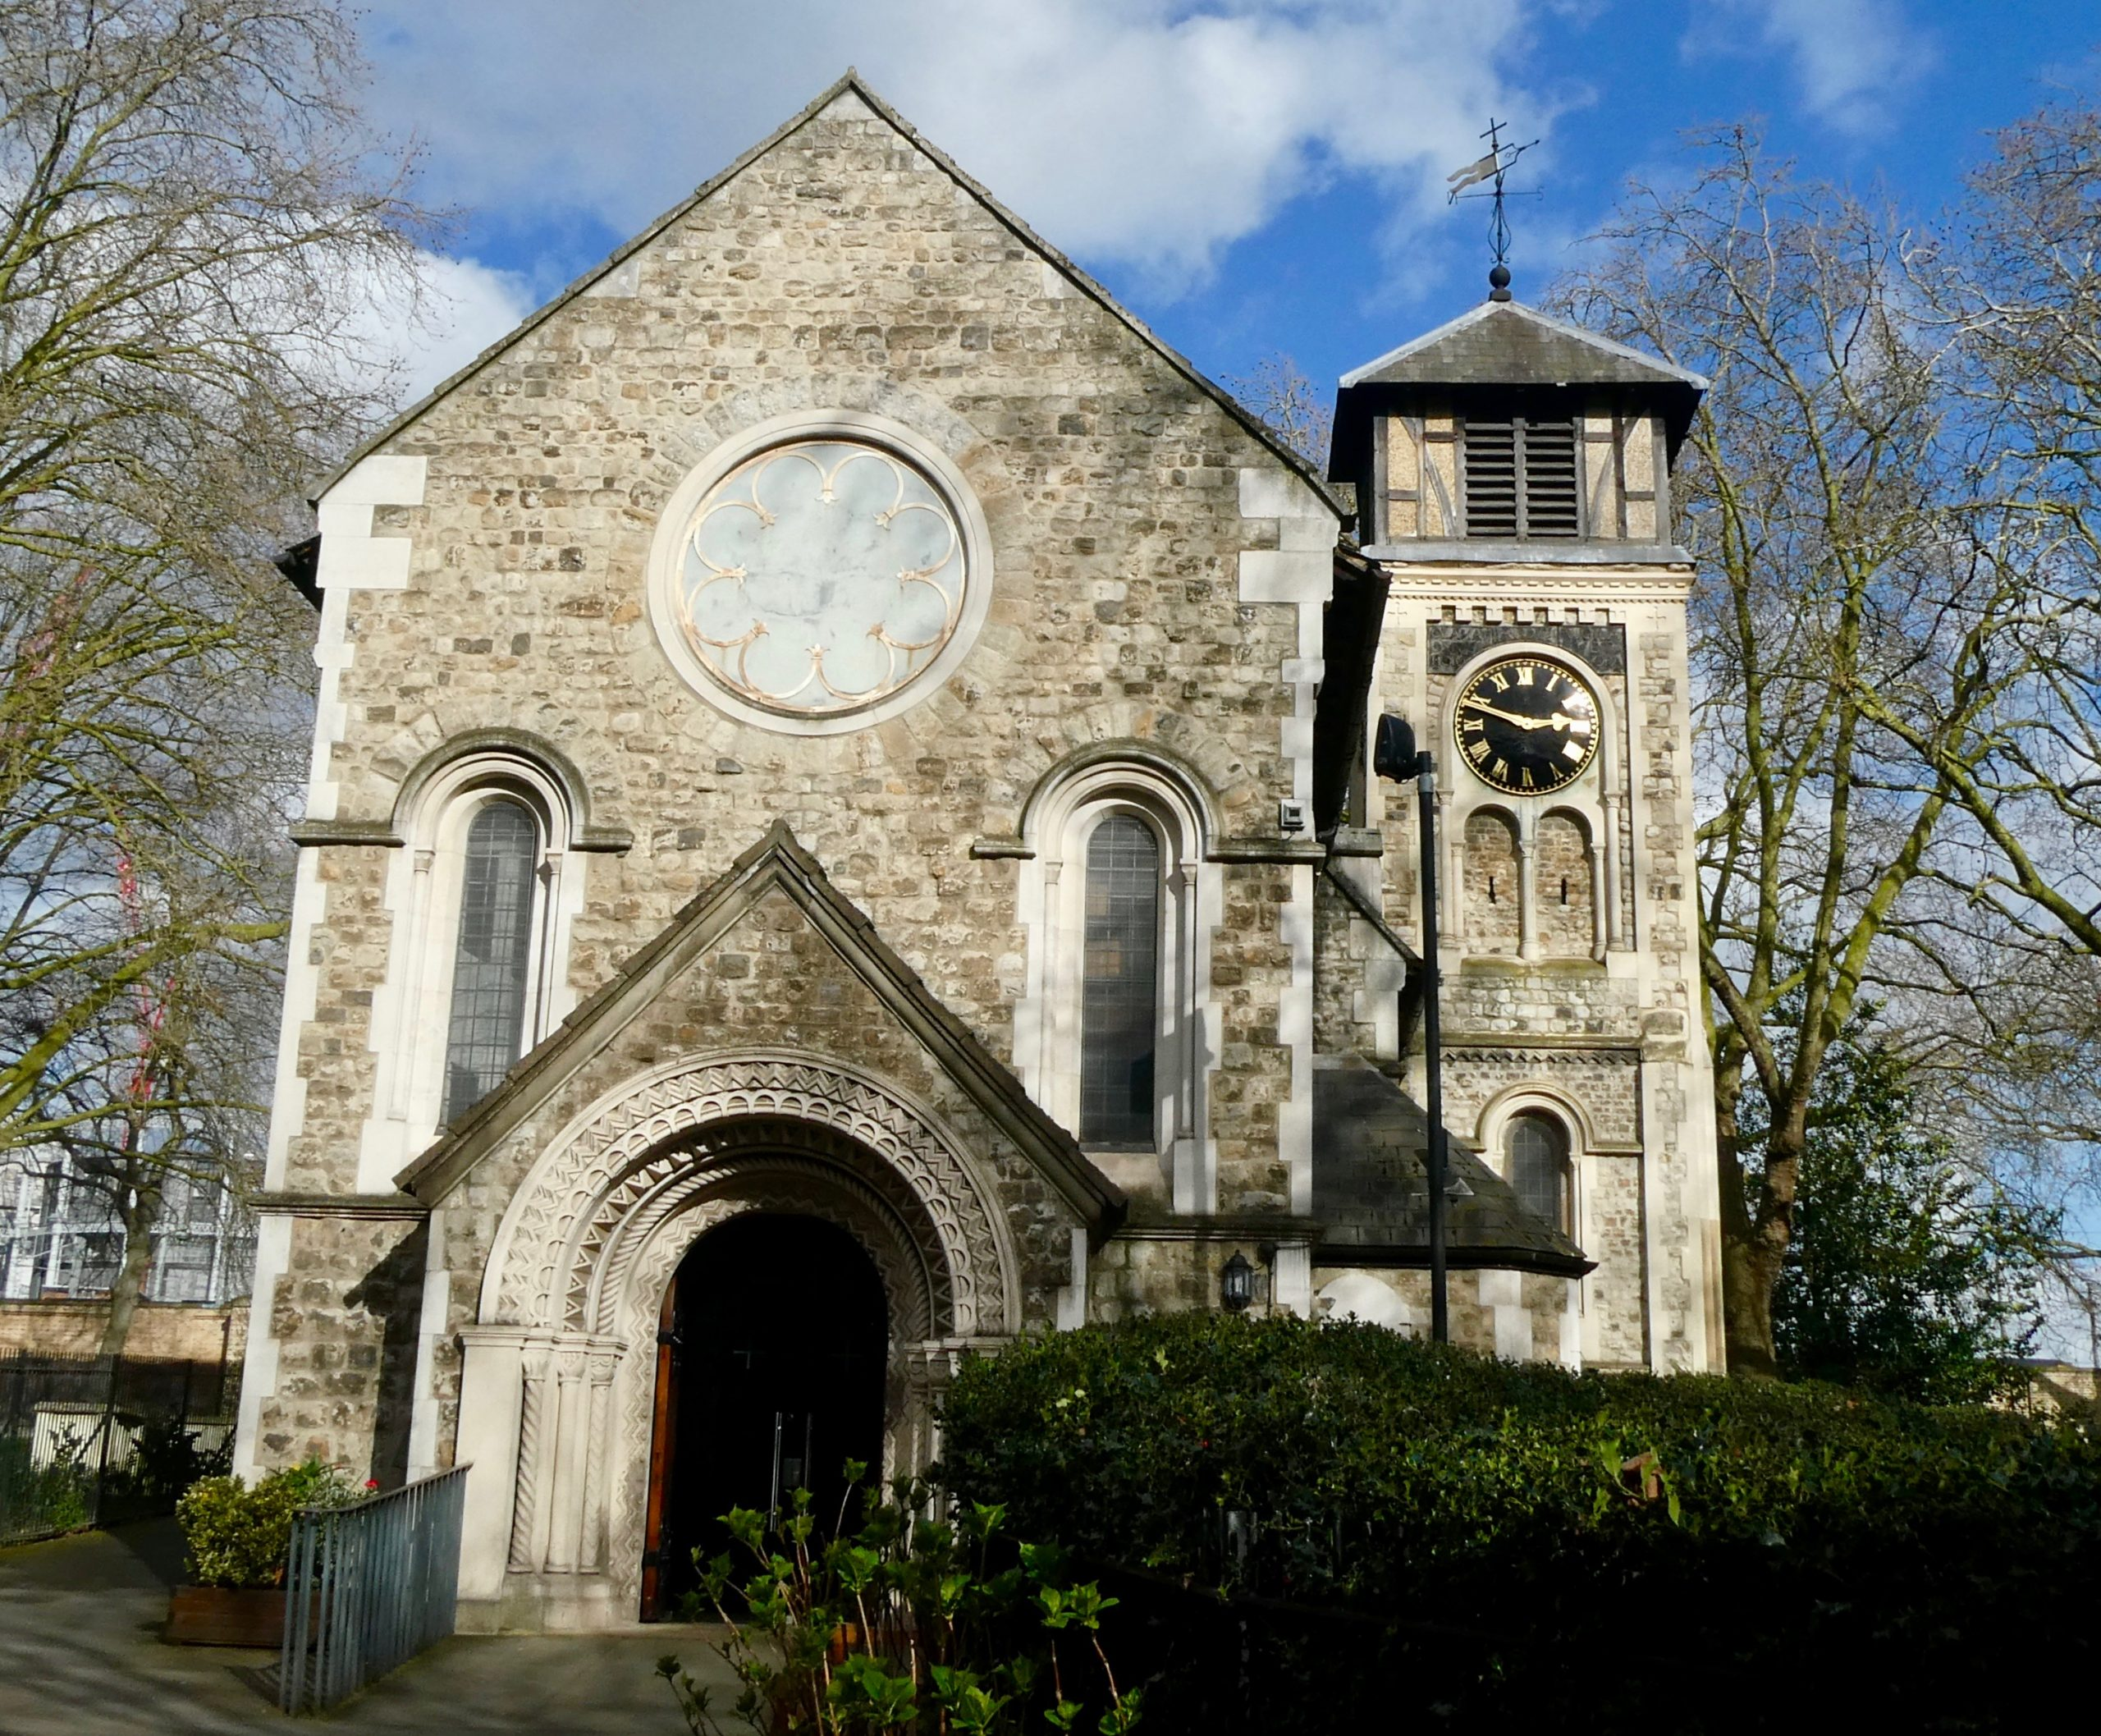 St Pancras Old Church, London